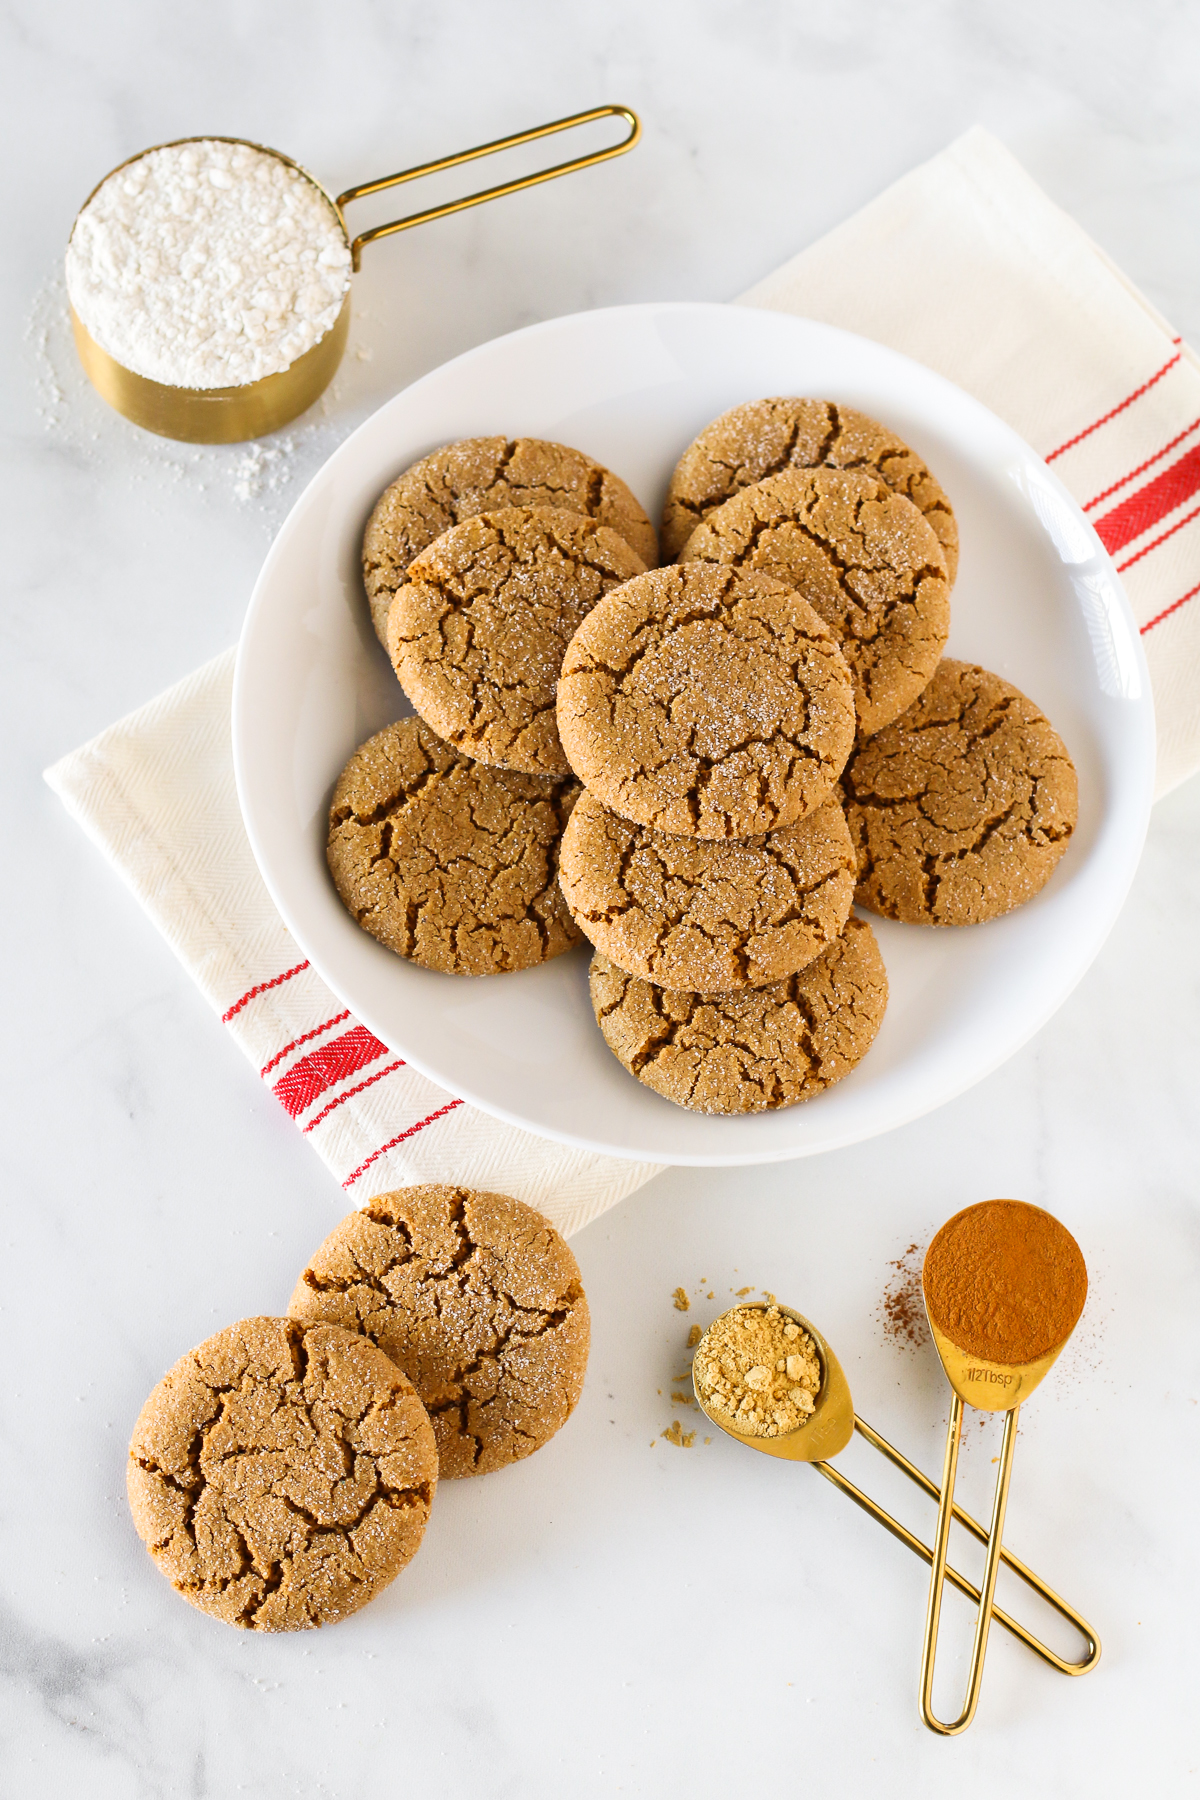 Gluten Free Vegan Molasses Cookies. Soft, chewy and perfectly spiced. A plate of these cookies is sure to be a hit at any holiday party!